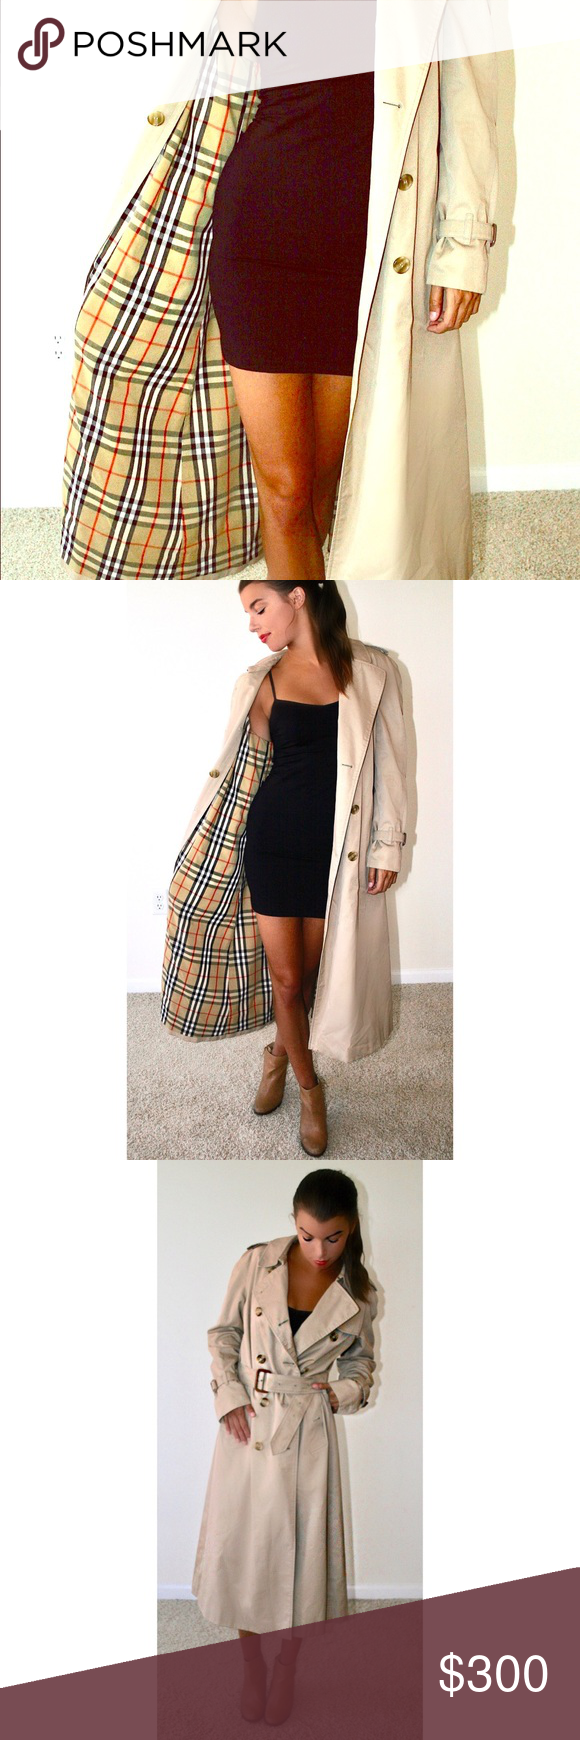 1f91676675d02b Vintage Burberry Trench Coat\ Women's Tan\Medium This is a classic piece of  vintage clothing! Burberry, size medium, color is tan.